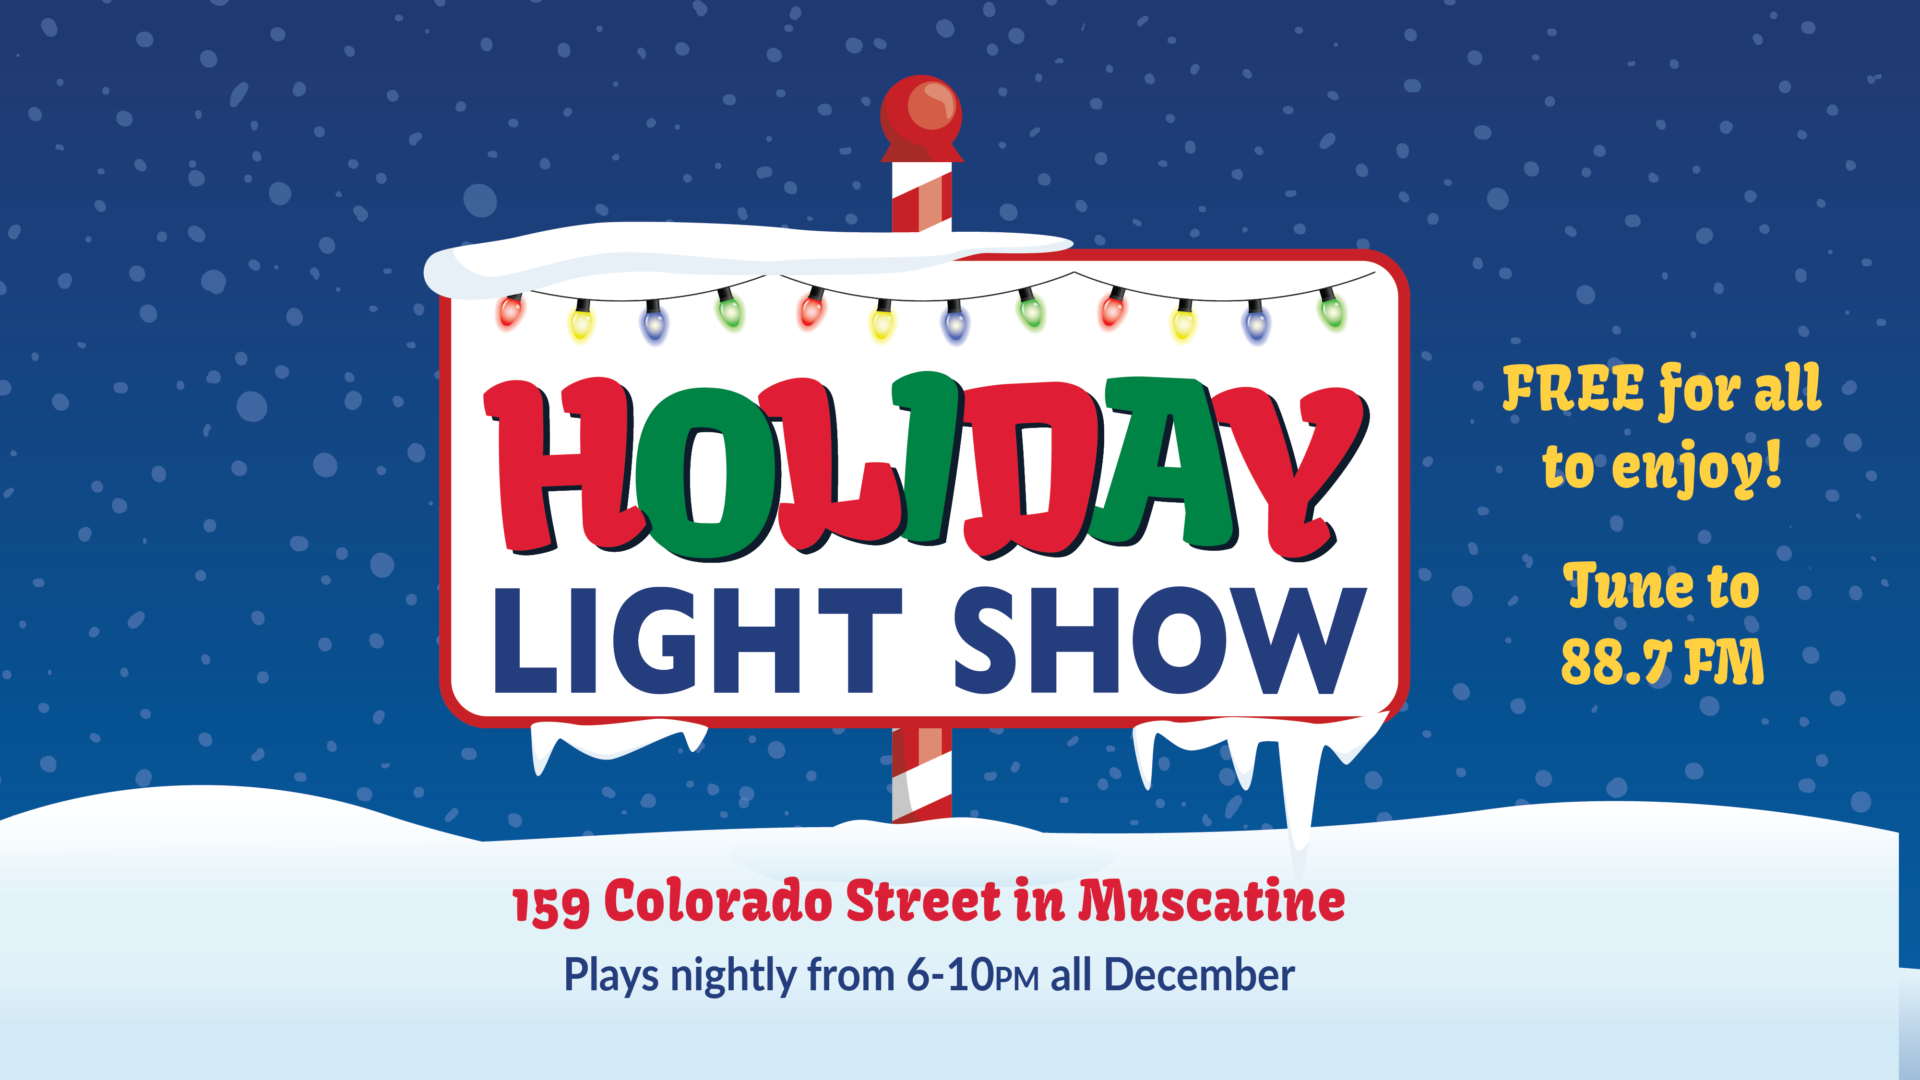 Holiday Light Show 159 Colorado Street all December long. Tune to 88.7FM. Free for all to enjoy. Ourdoor sign with christmas lights